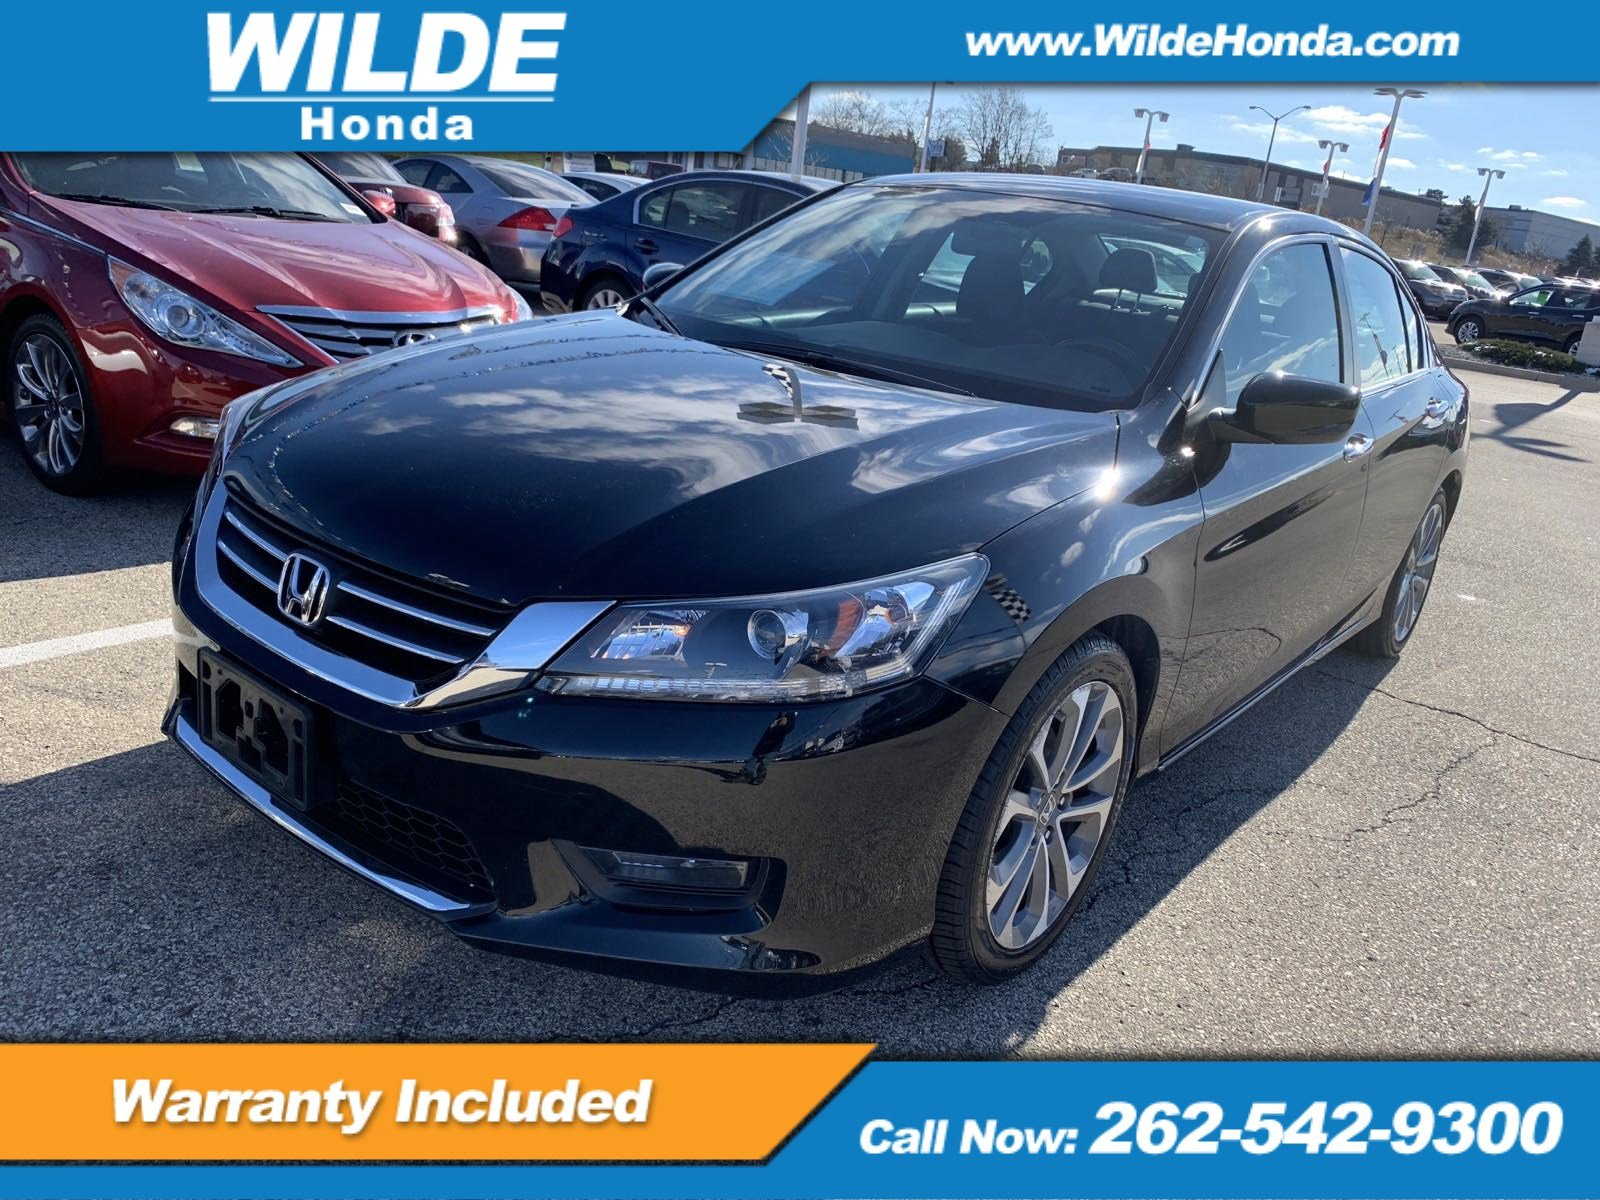 Certified Pre Owned 2015 Honda Accord Sport 4dr Car in A